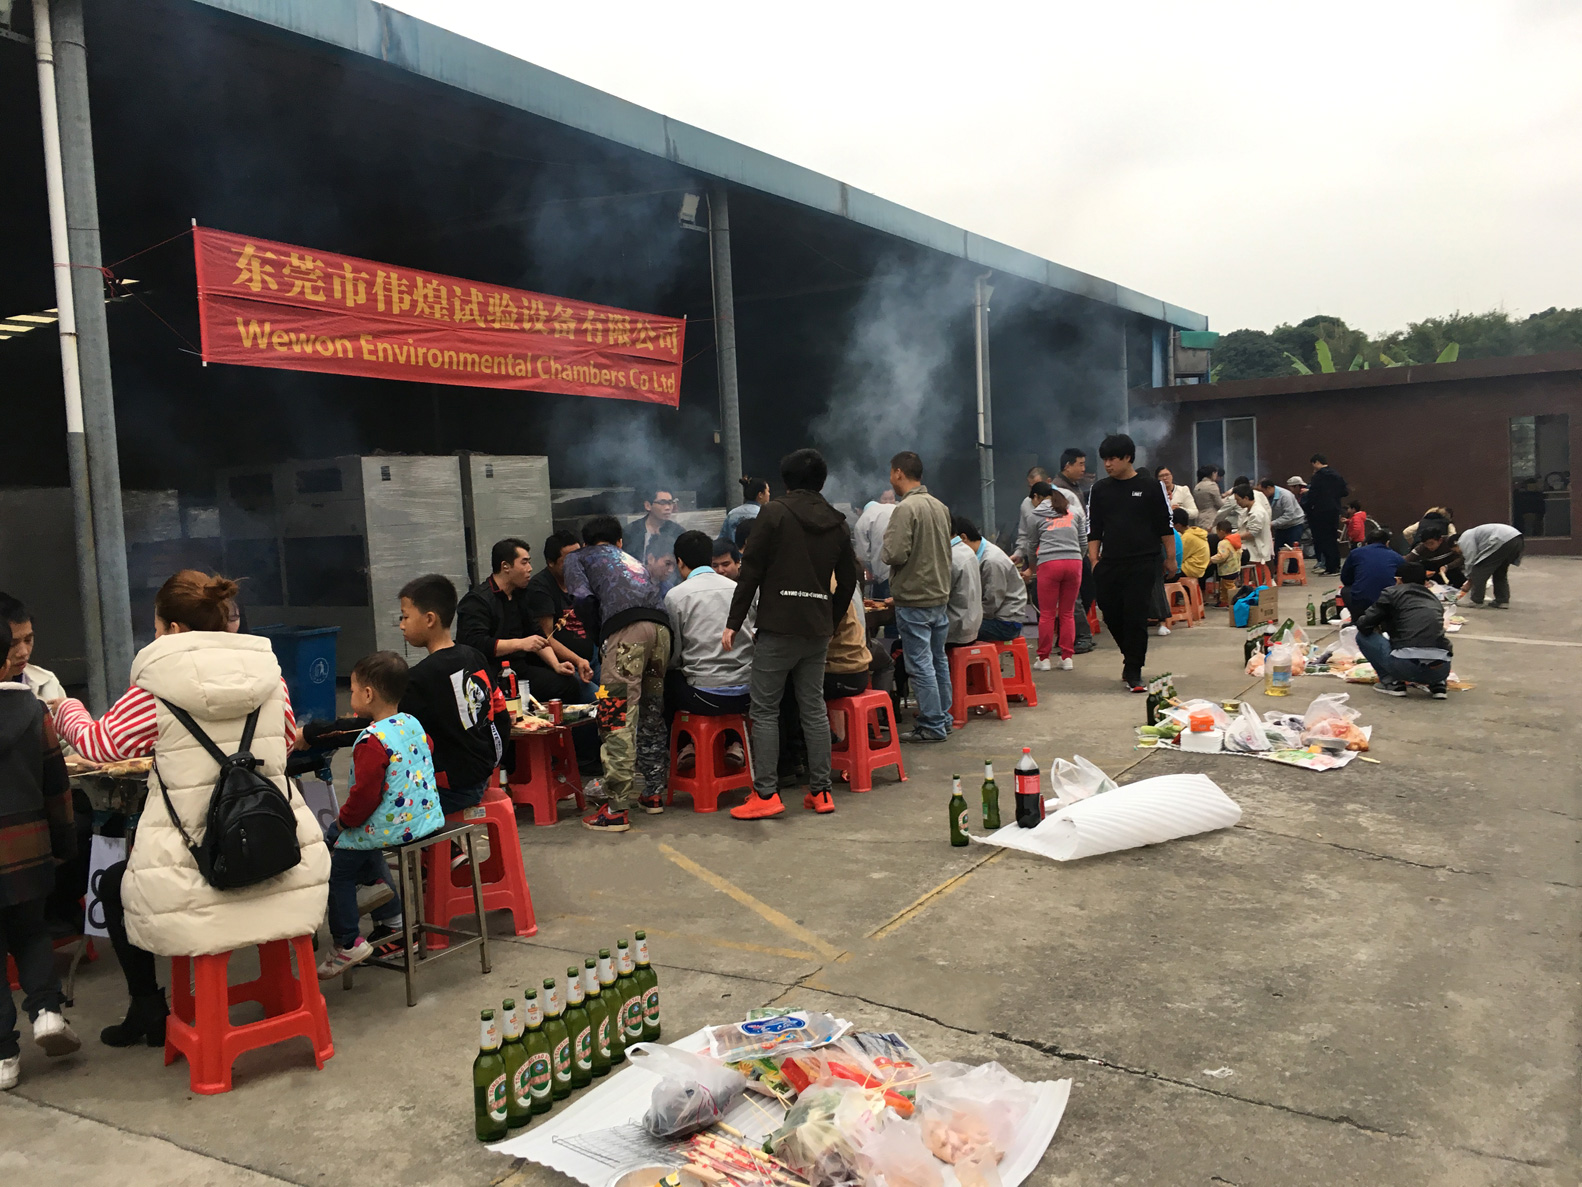 Barbecue Party for Wewon Employees